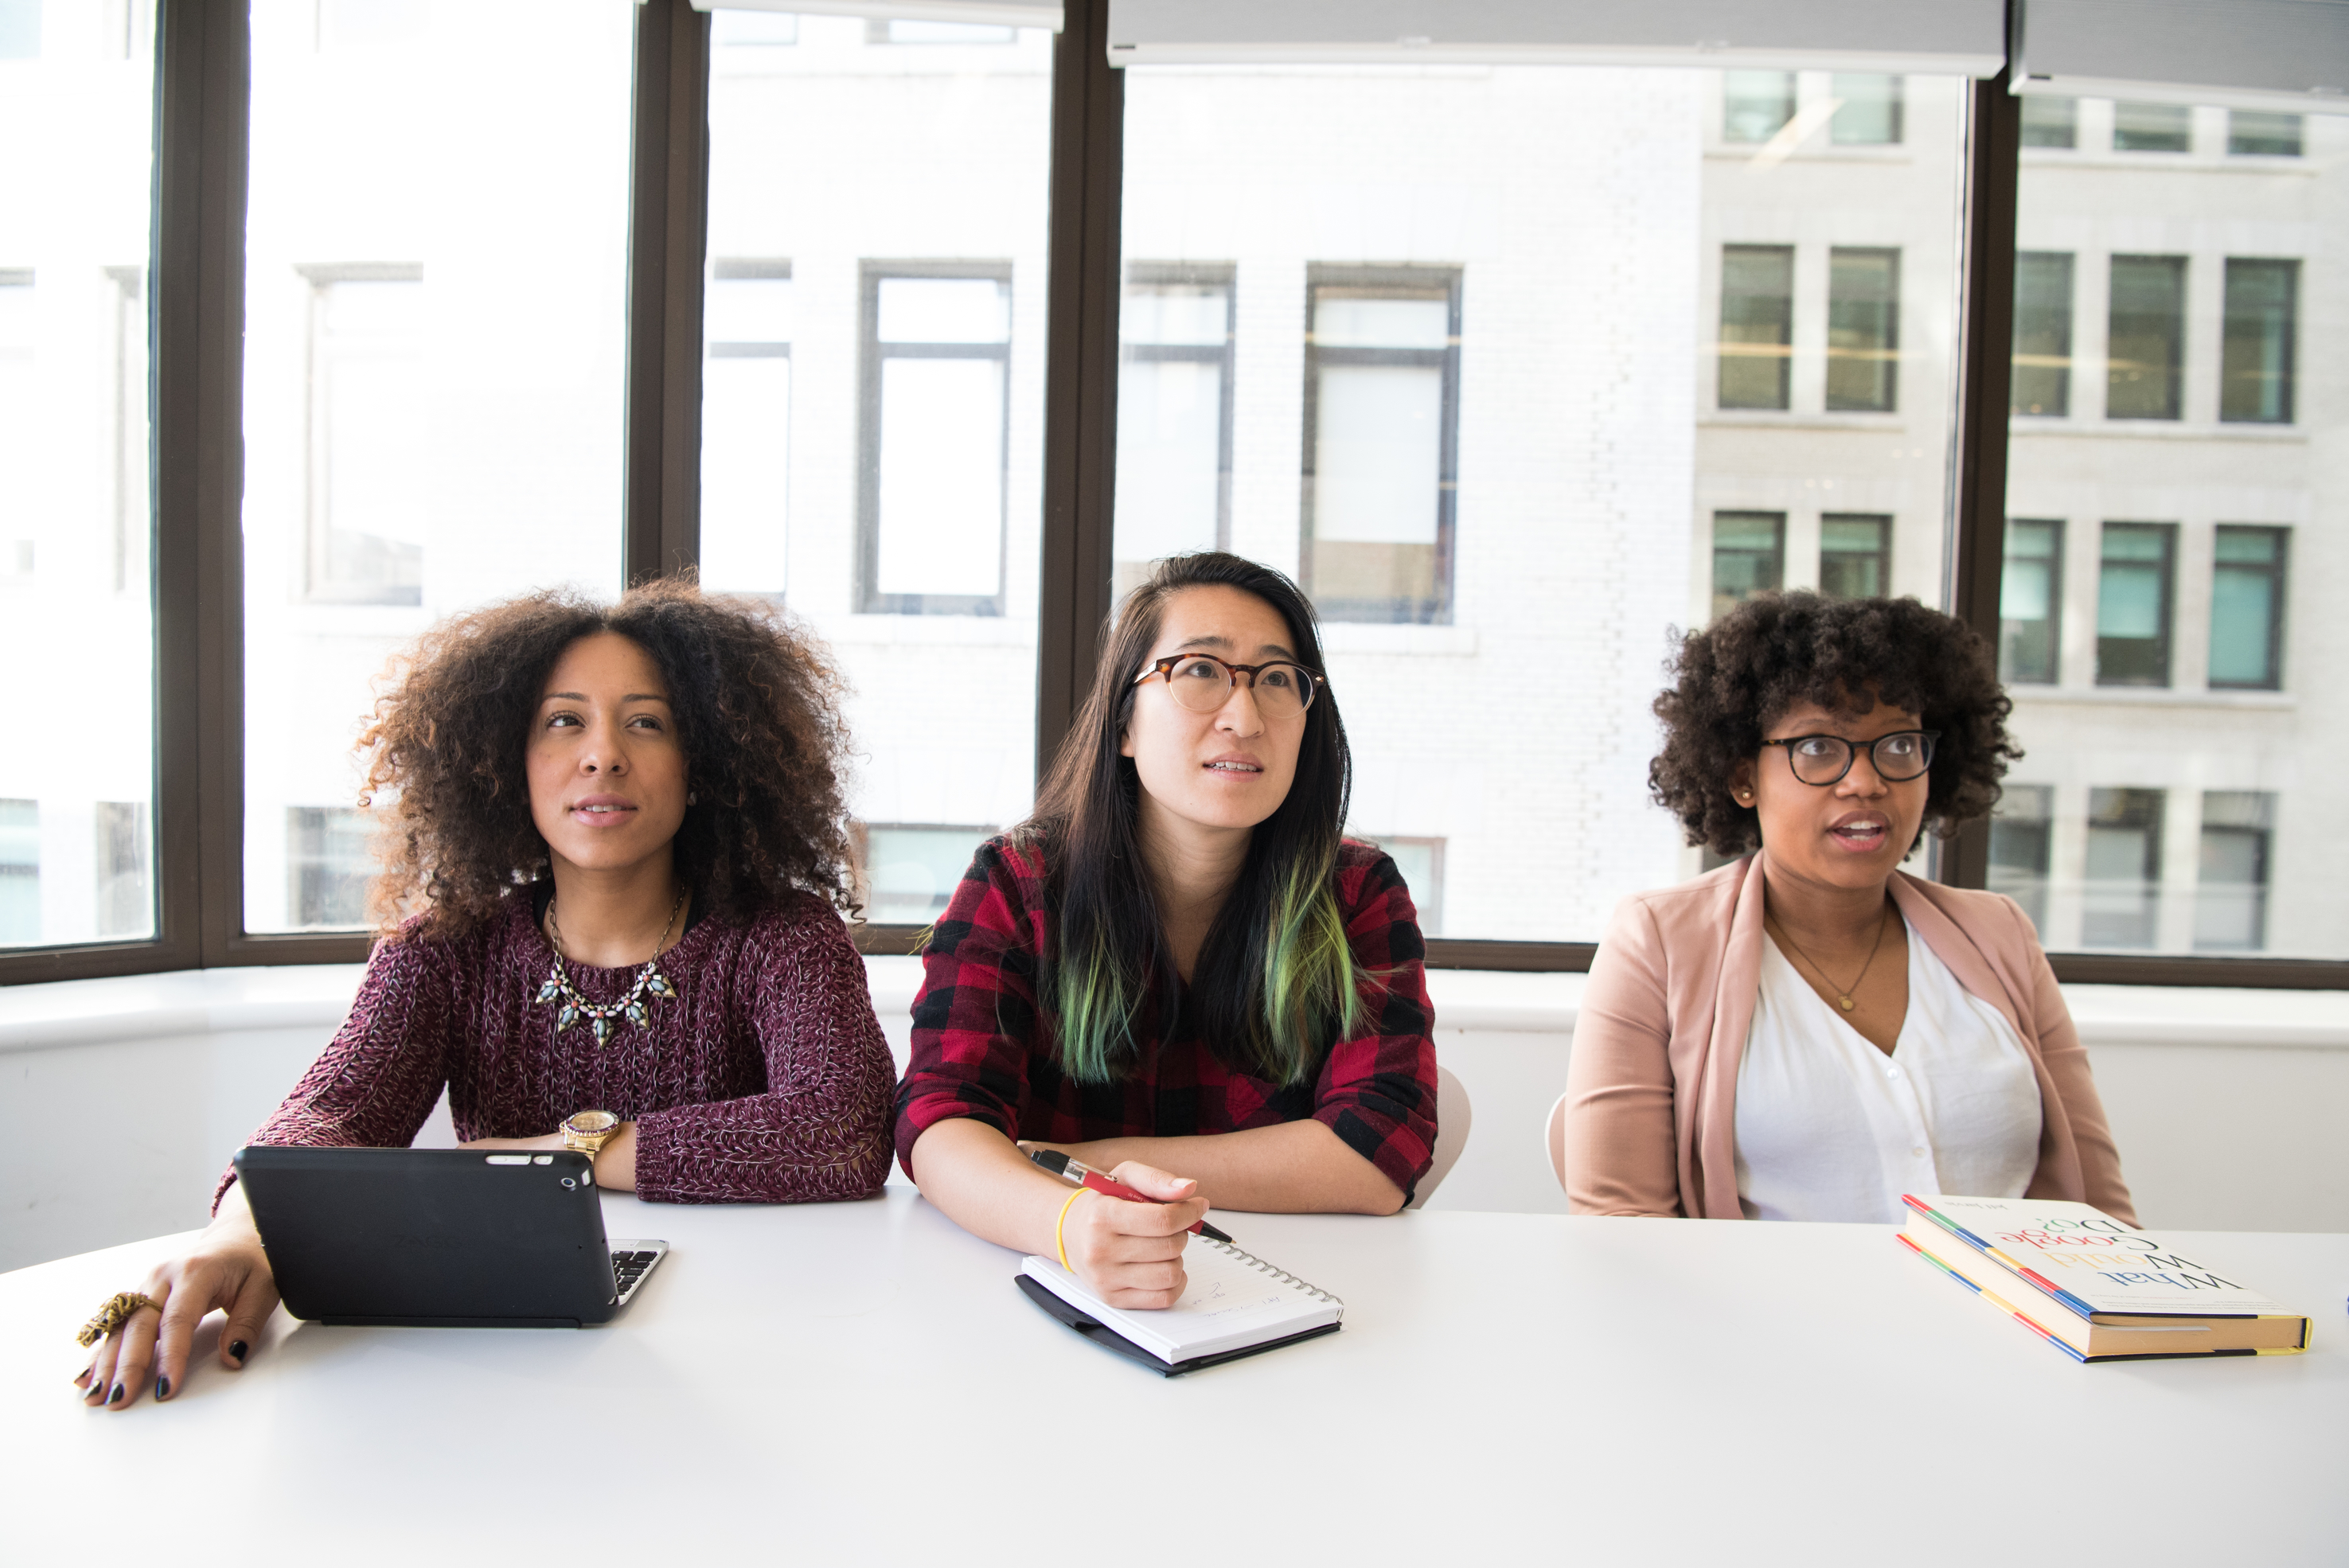 From Emojis to Emotional Connection: How Millennials Are Shaping Office Collaboration